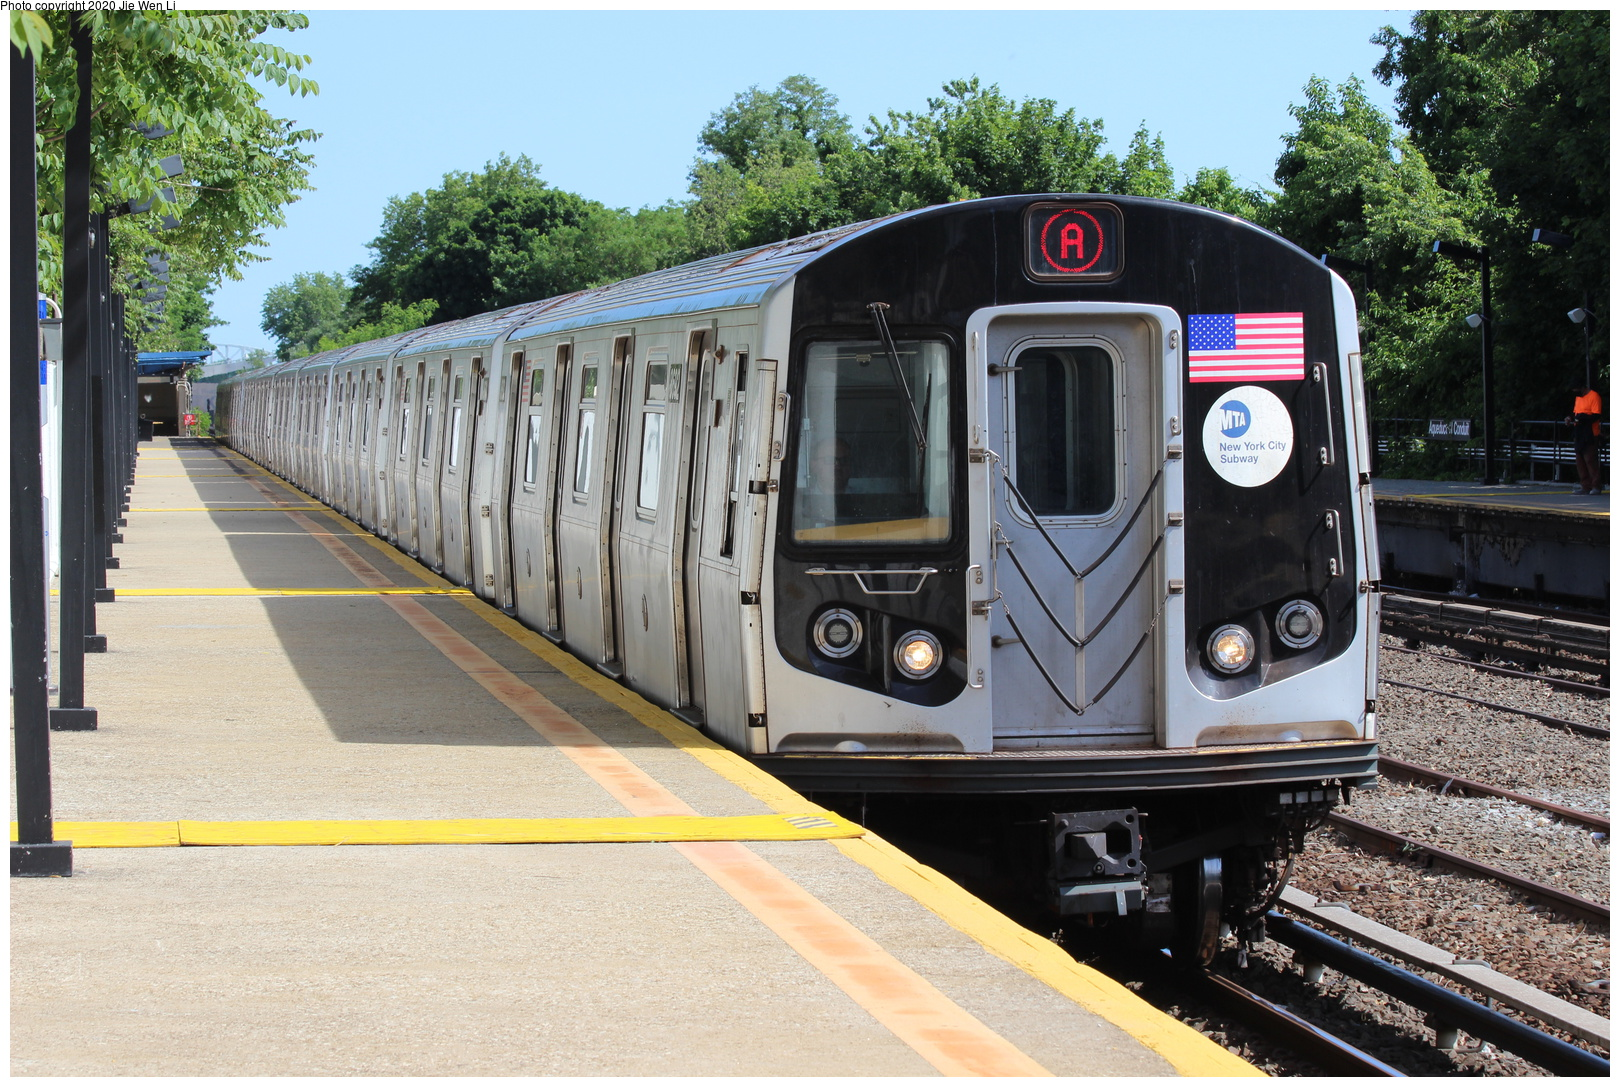 (261k, 1044x1037)<br><b>Country:</b> United States<br><b>City:</b> New York<br><b>System:</b> New York City Transit<br><b>Line:</b> BMT Canarsie Line<br><b>Location:</b> Broadway Junction <br><b>Car:</b> BMT Multi  <br><b>Photo by:</b> Joel Shanus<br><b>Notes:</b> Lefferts (Fulton line) train at Bway Jct.<br><b>Viewed (this week/total):</b> 2 / 1273